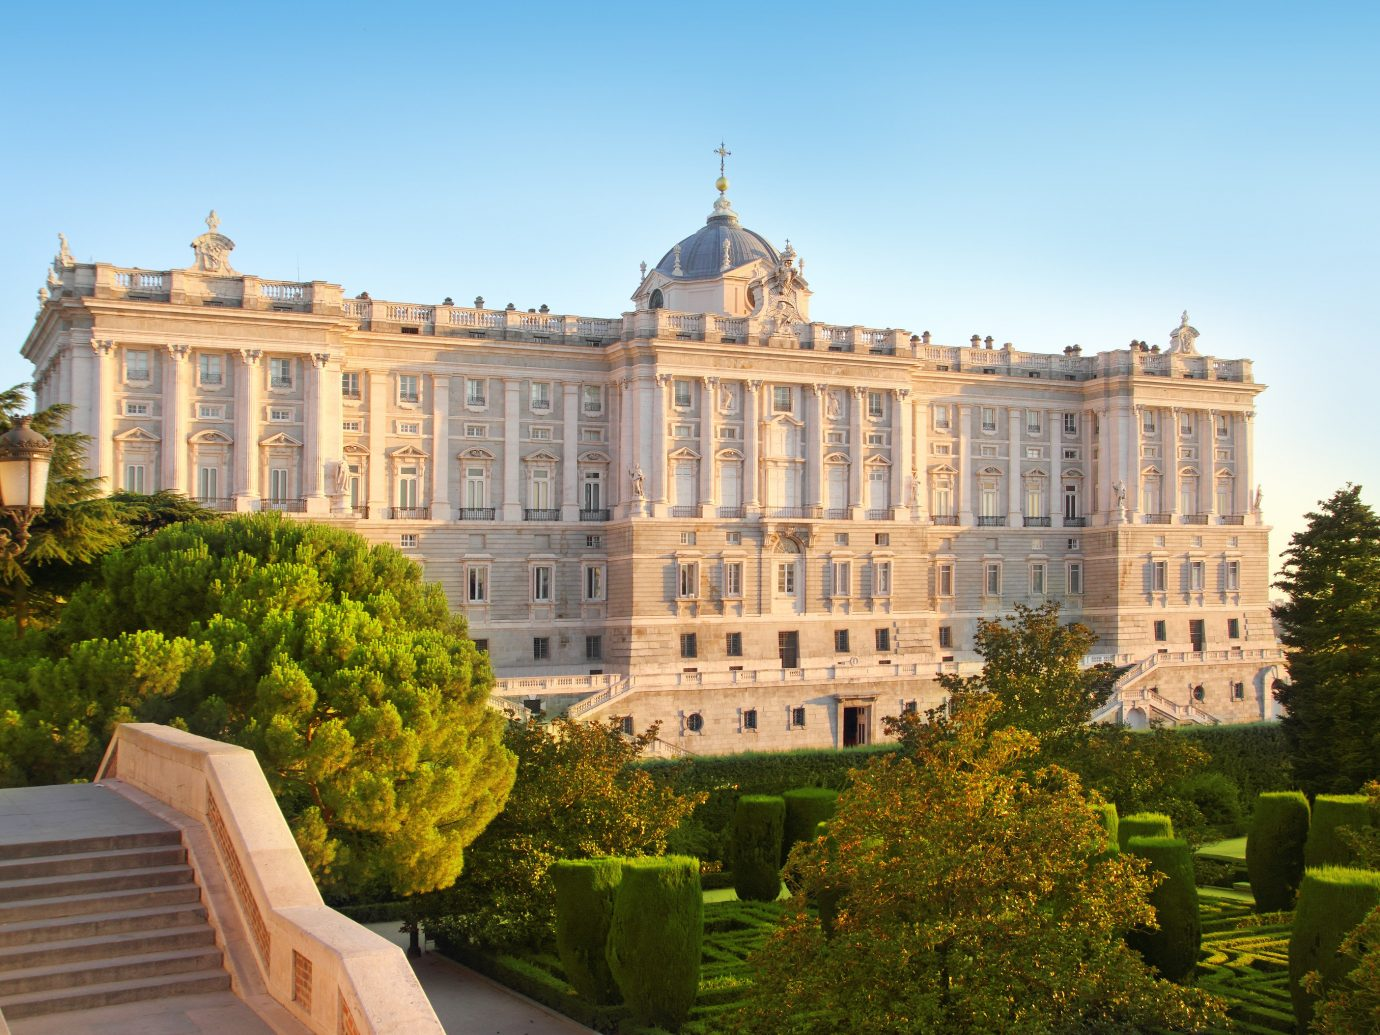 Hotels outdoor landmark building palace stately home château Architecture estate facade mansion castle plaza government building